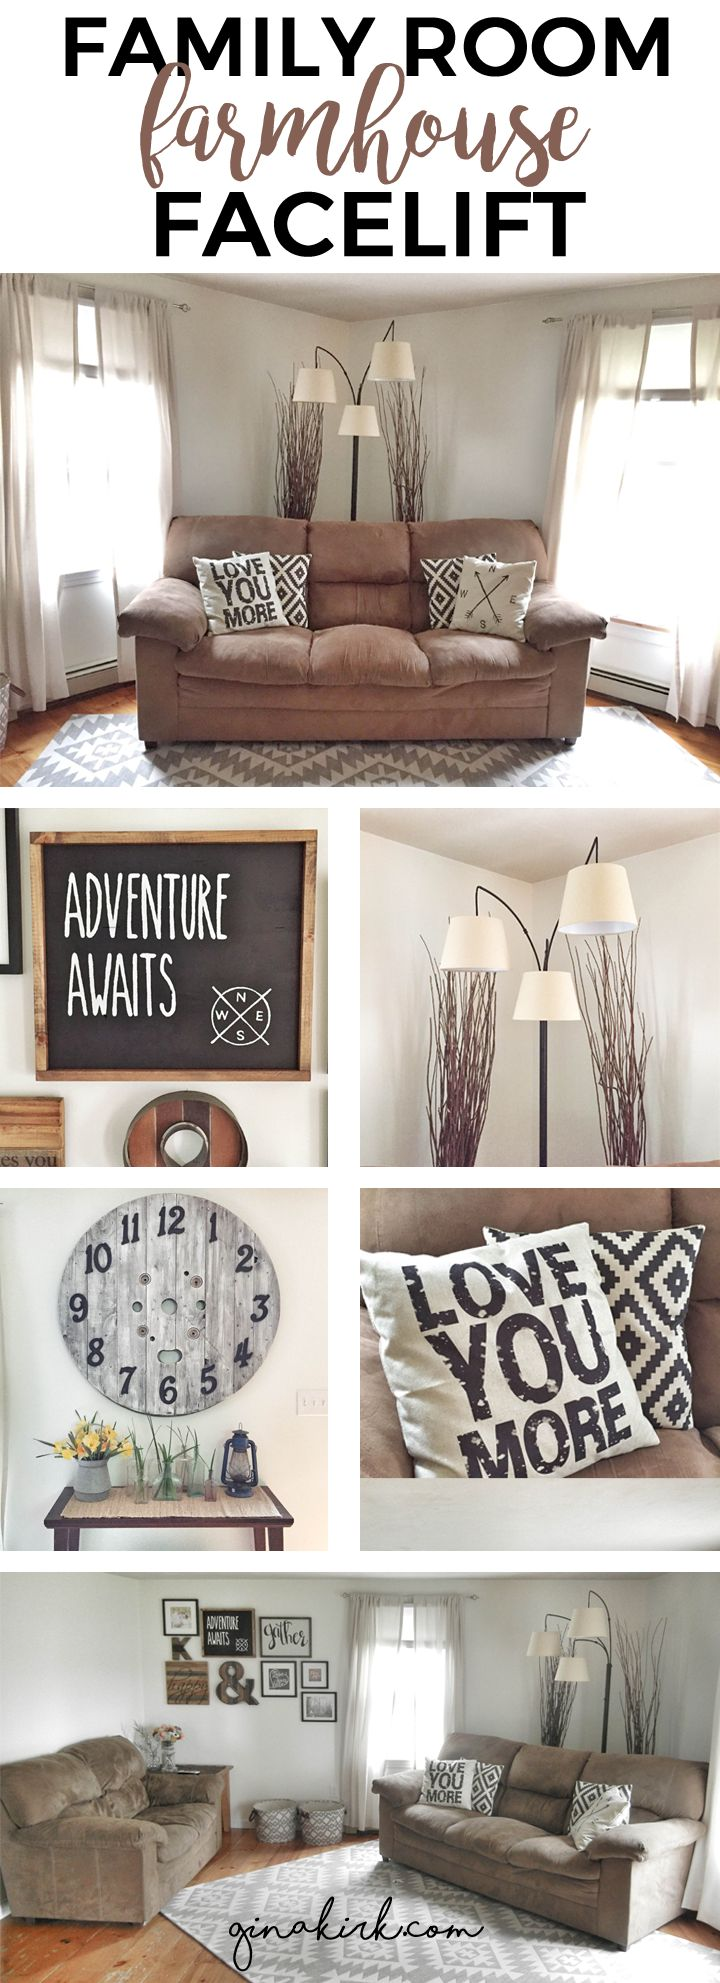 Family Room Farmhouse Facelift! | Check out this living room / family room makeover - a touch of charm and a whole lot of character and fixer upper design in this cape style family room space. GinaKirk.com @ginaekirk